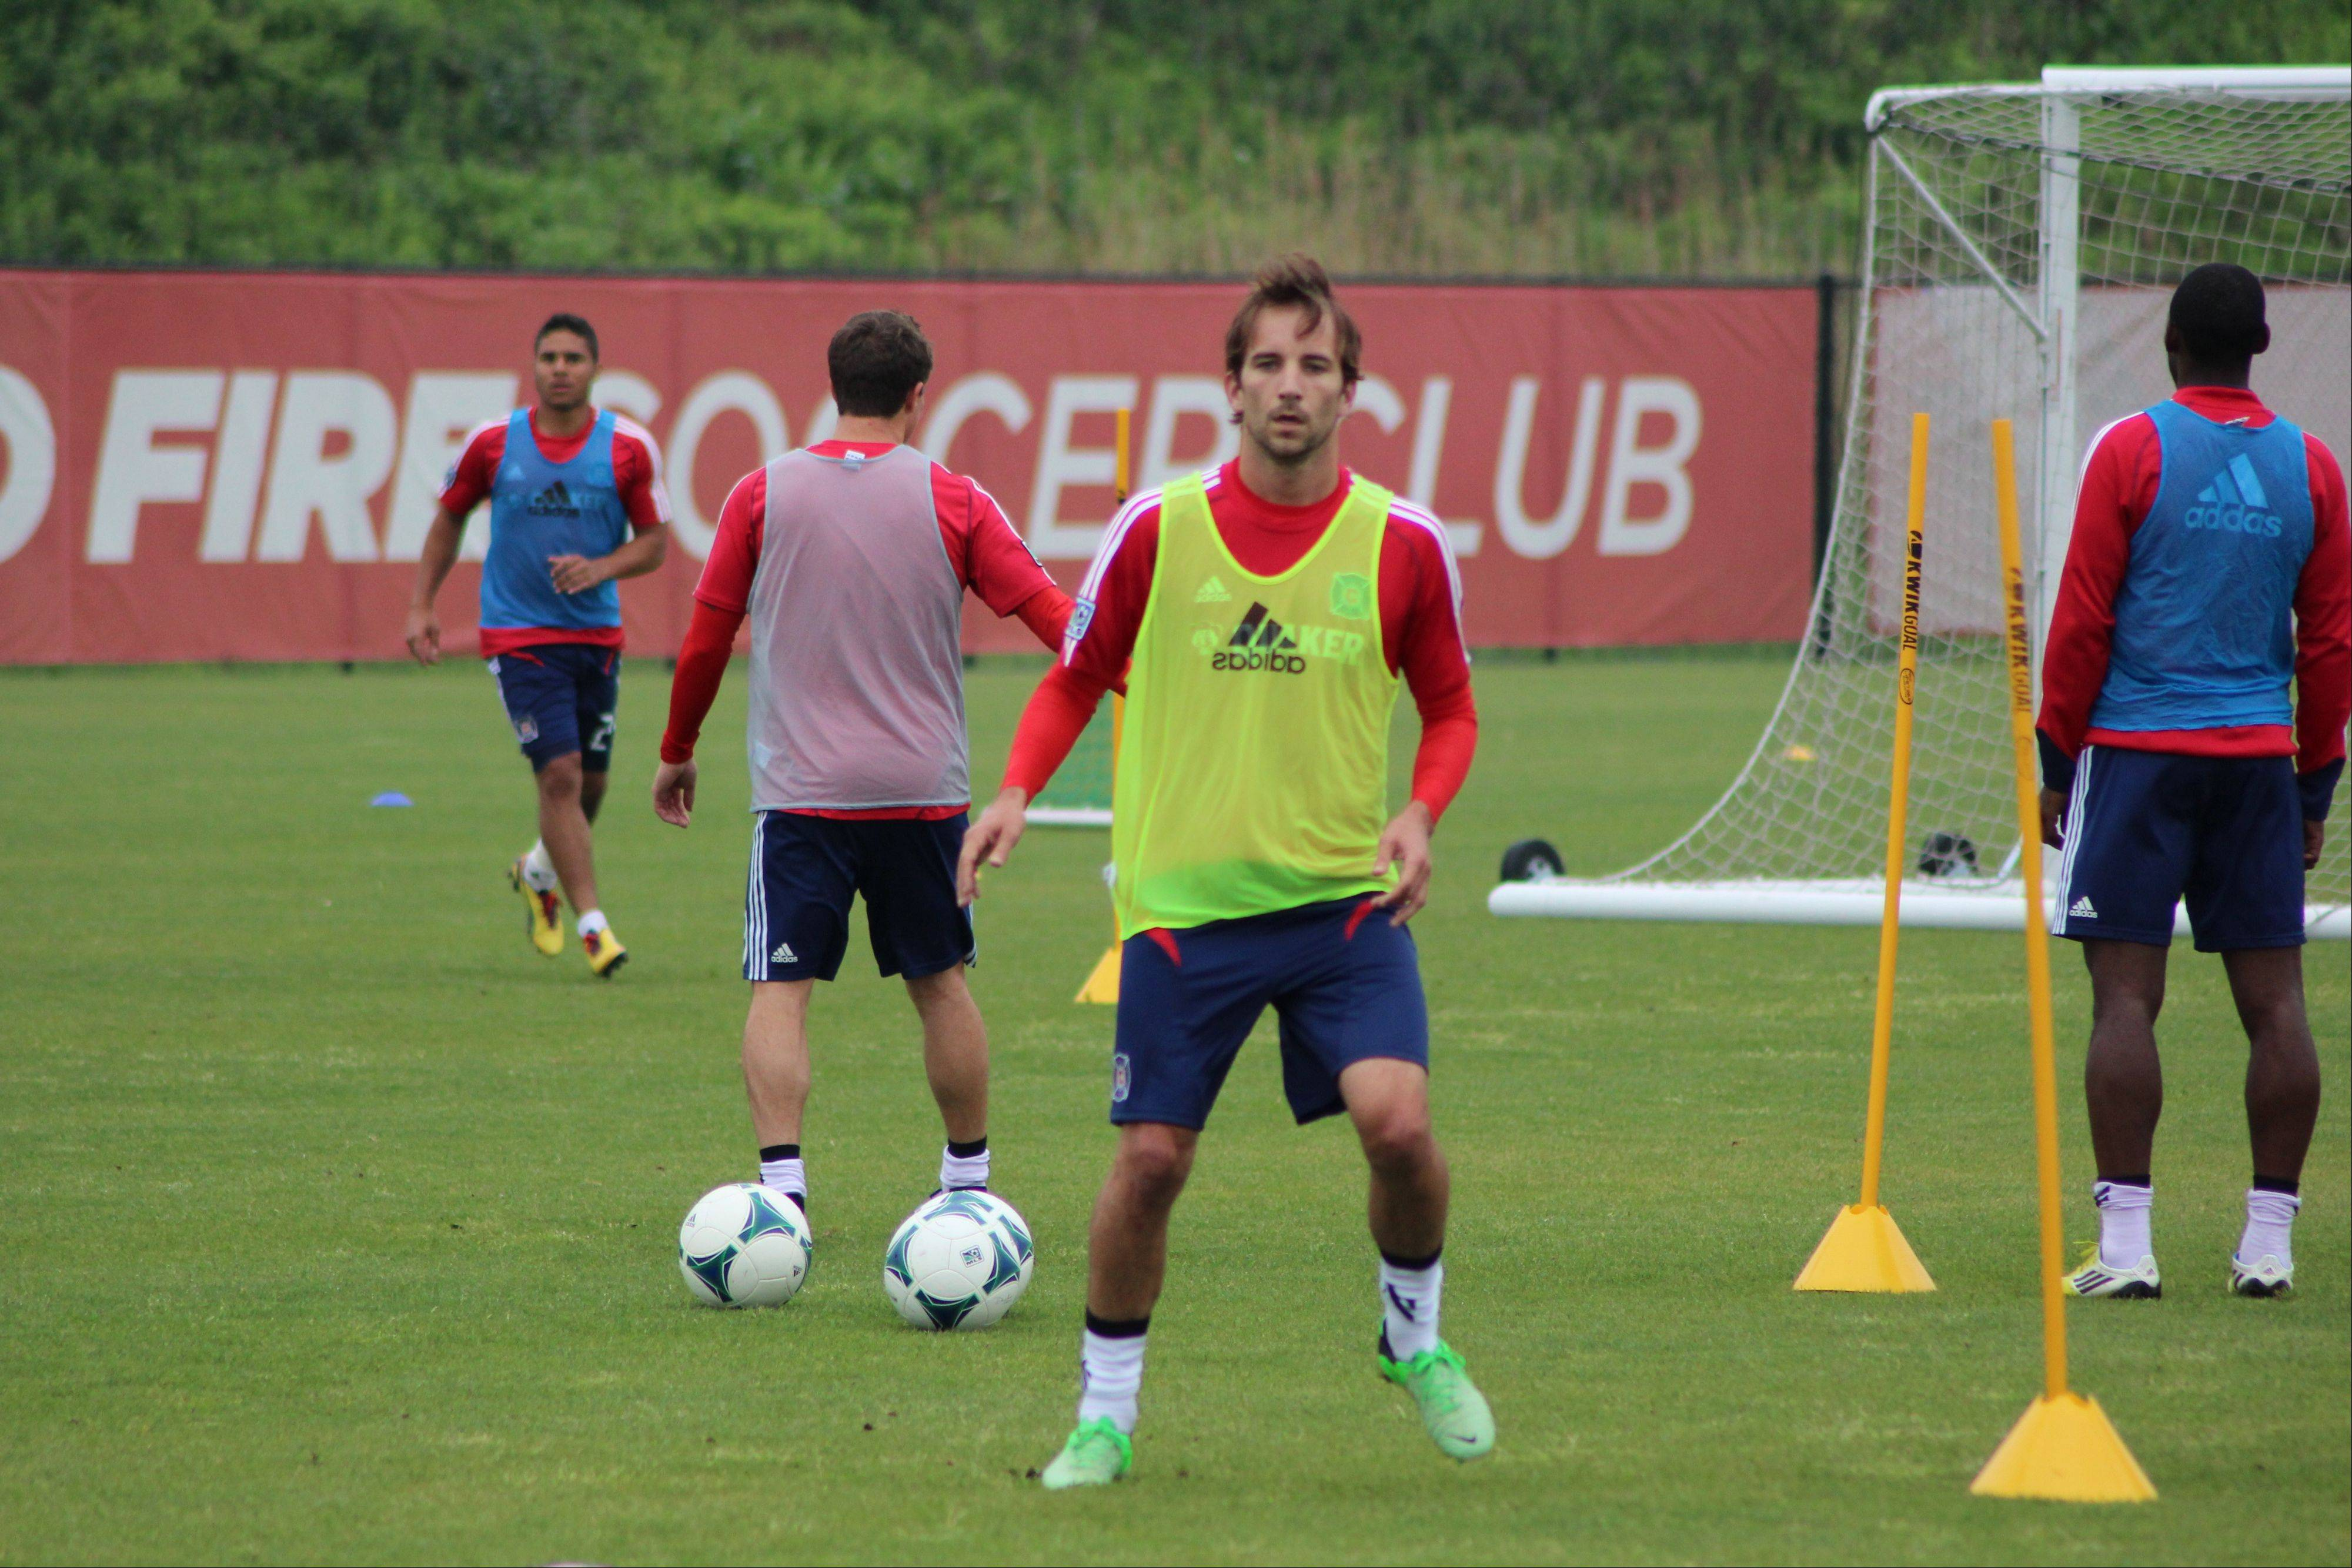 The Chicago Fire acquired Mike Magee on Friday night in a trade with the L.A. Galaxy, and he hopes to play in Wednesday�s U.S. Cup contest.